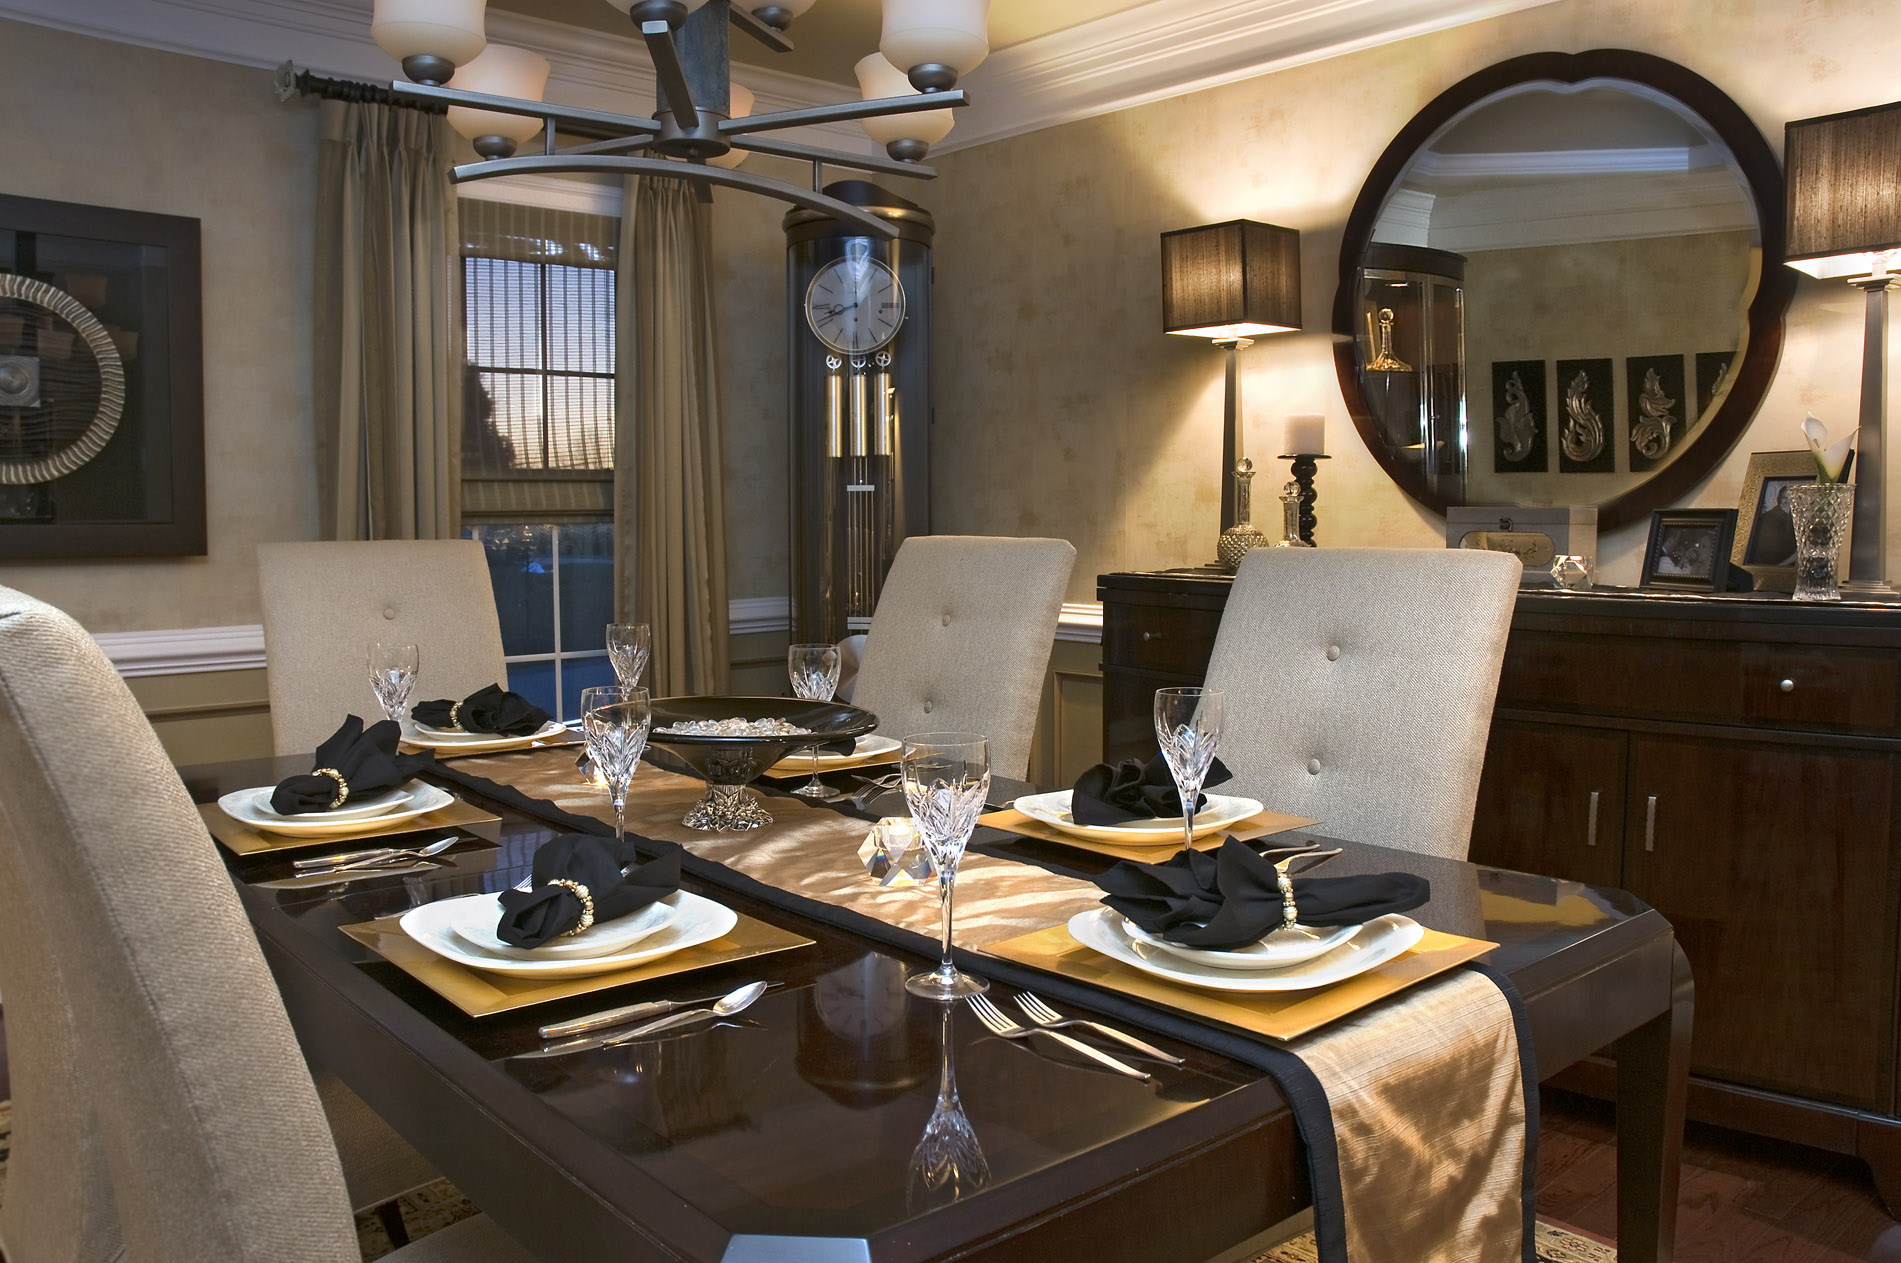 Dining in style decorating den interiors for Decorating den interiors